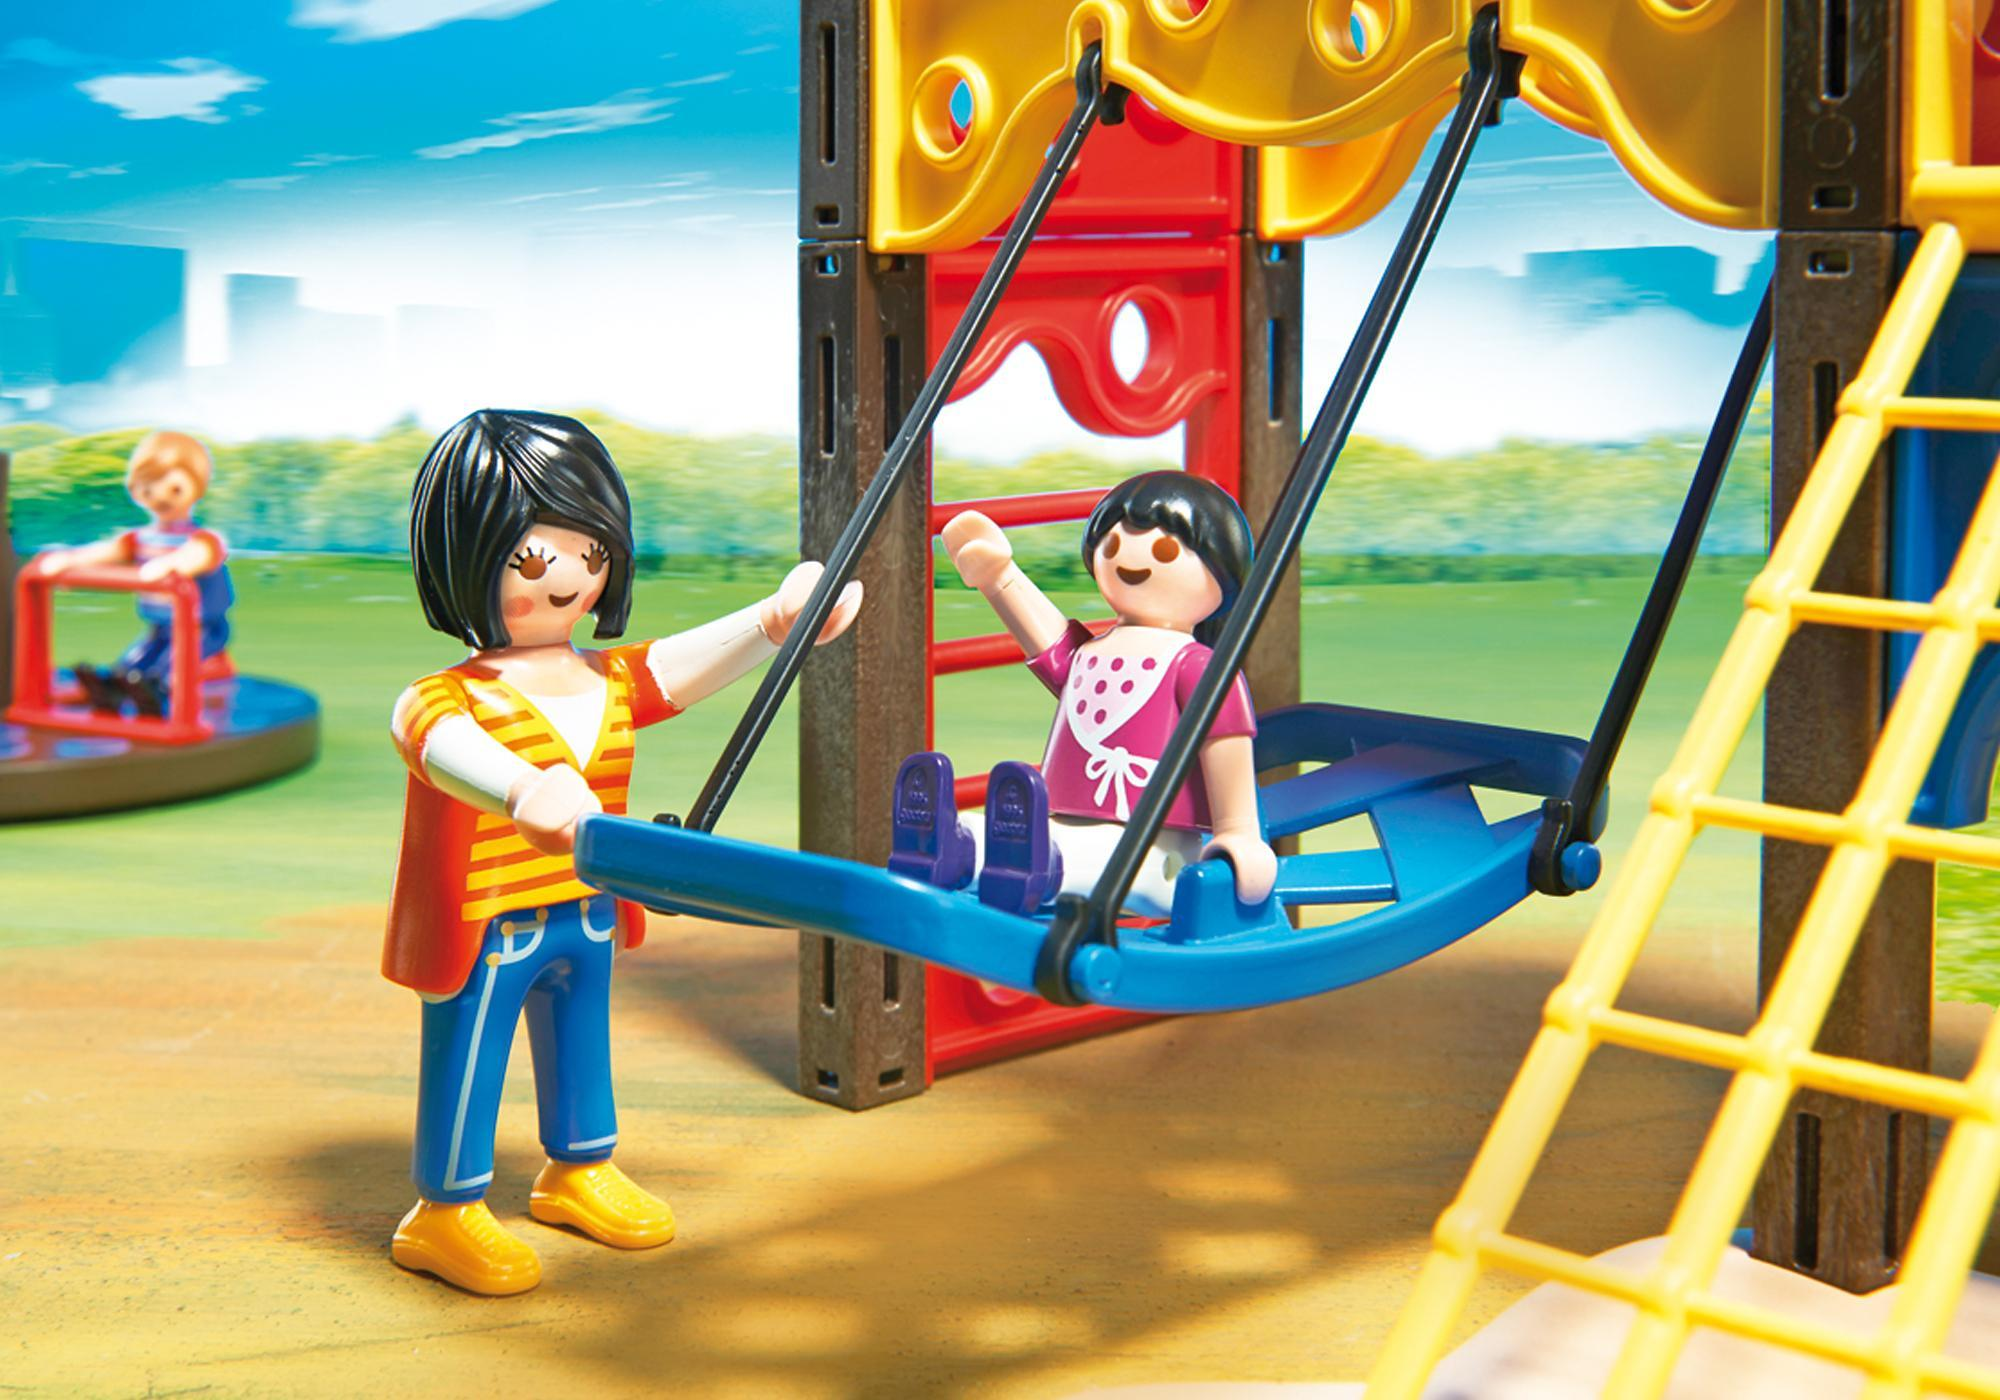 http://media.playmobil.com/i/playmobil/5612_product_extra1/Playground